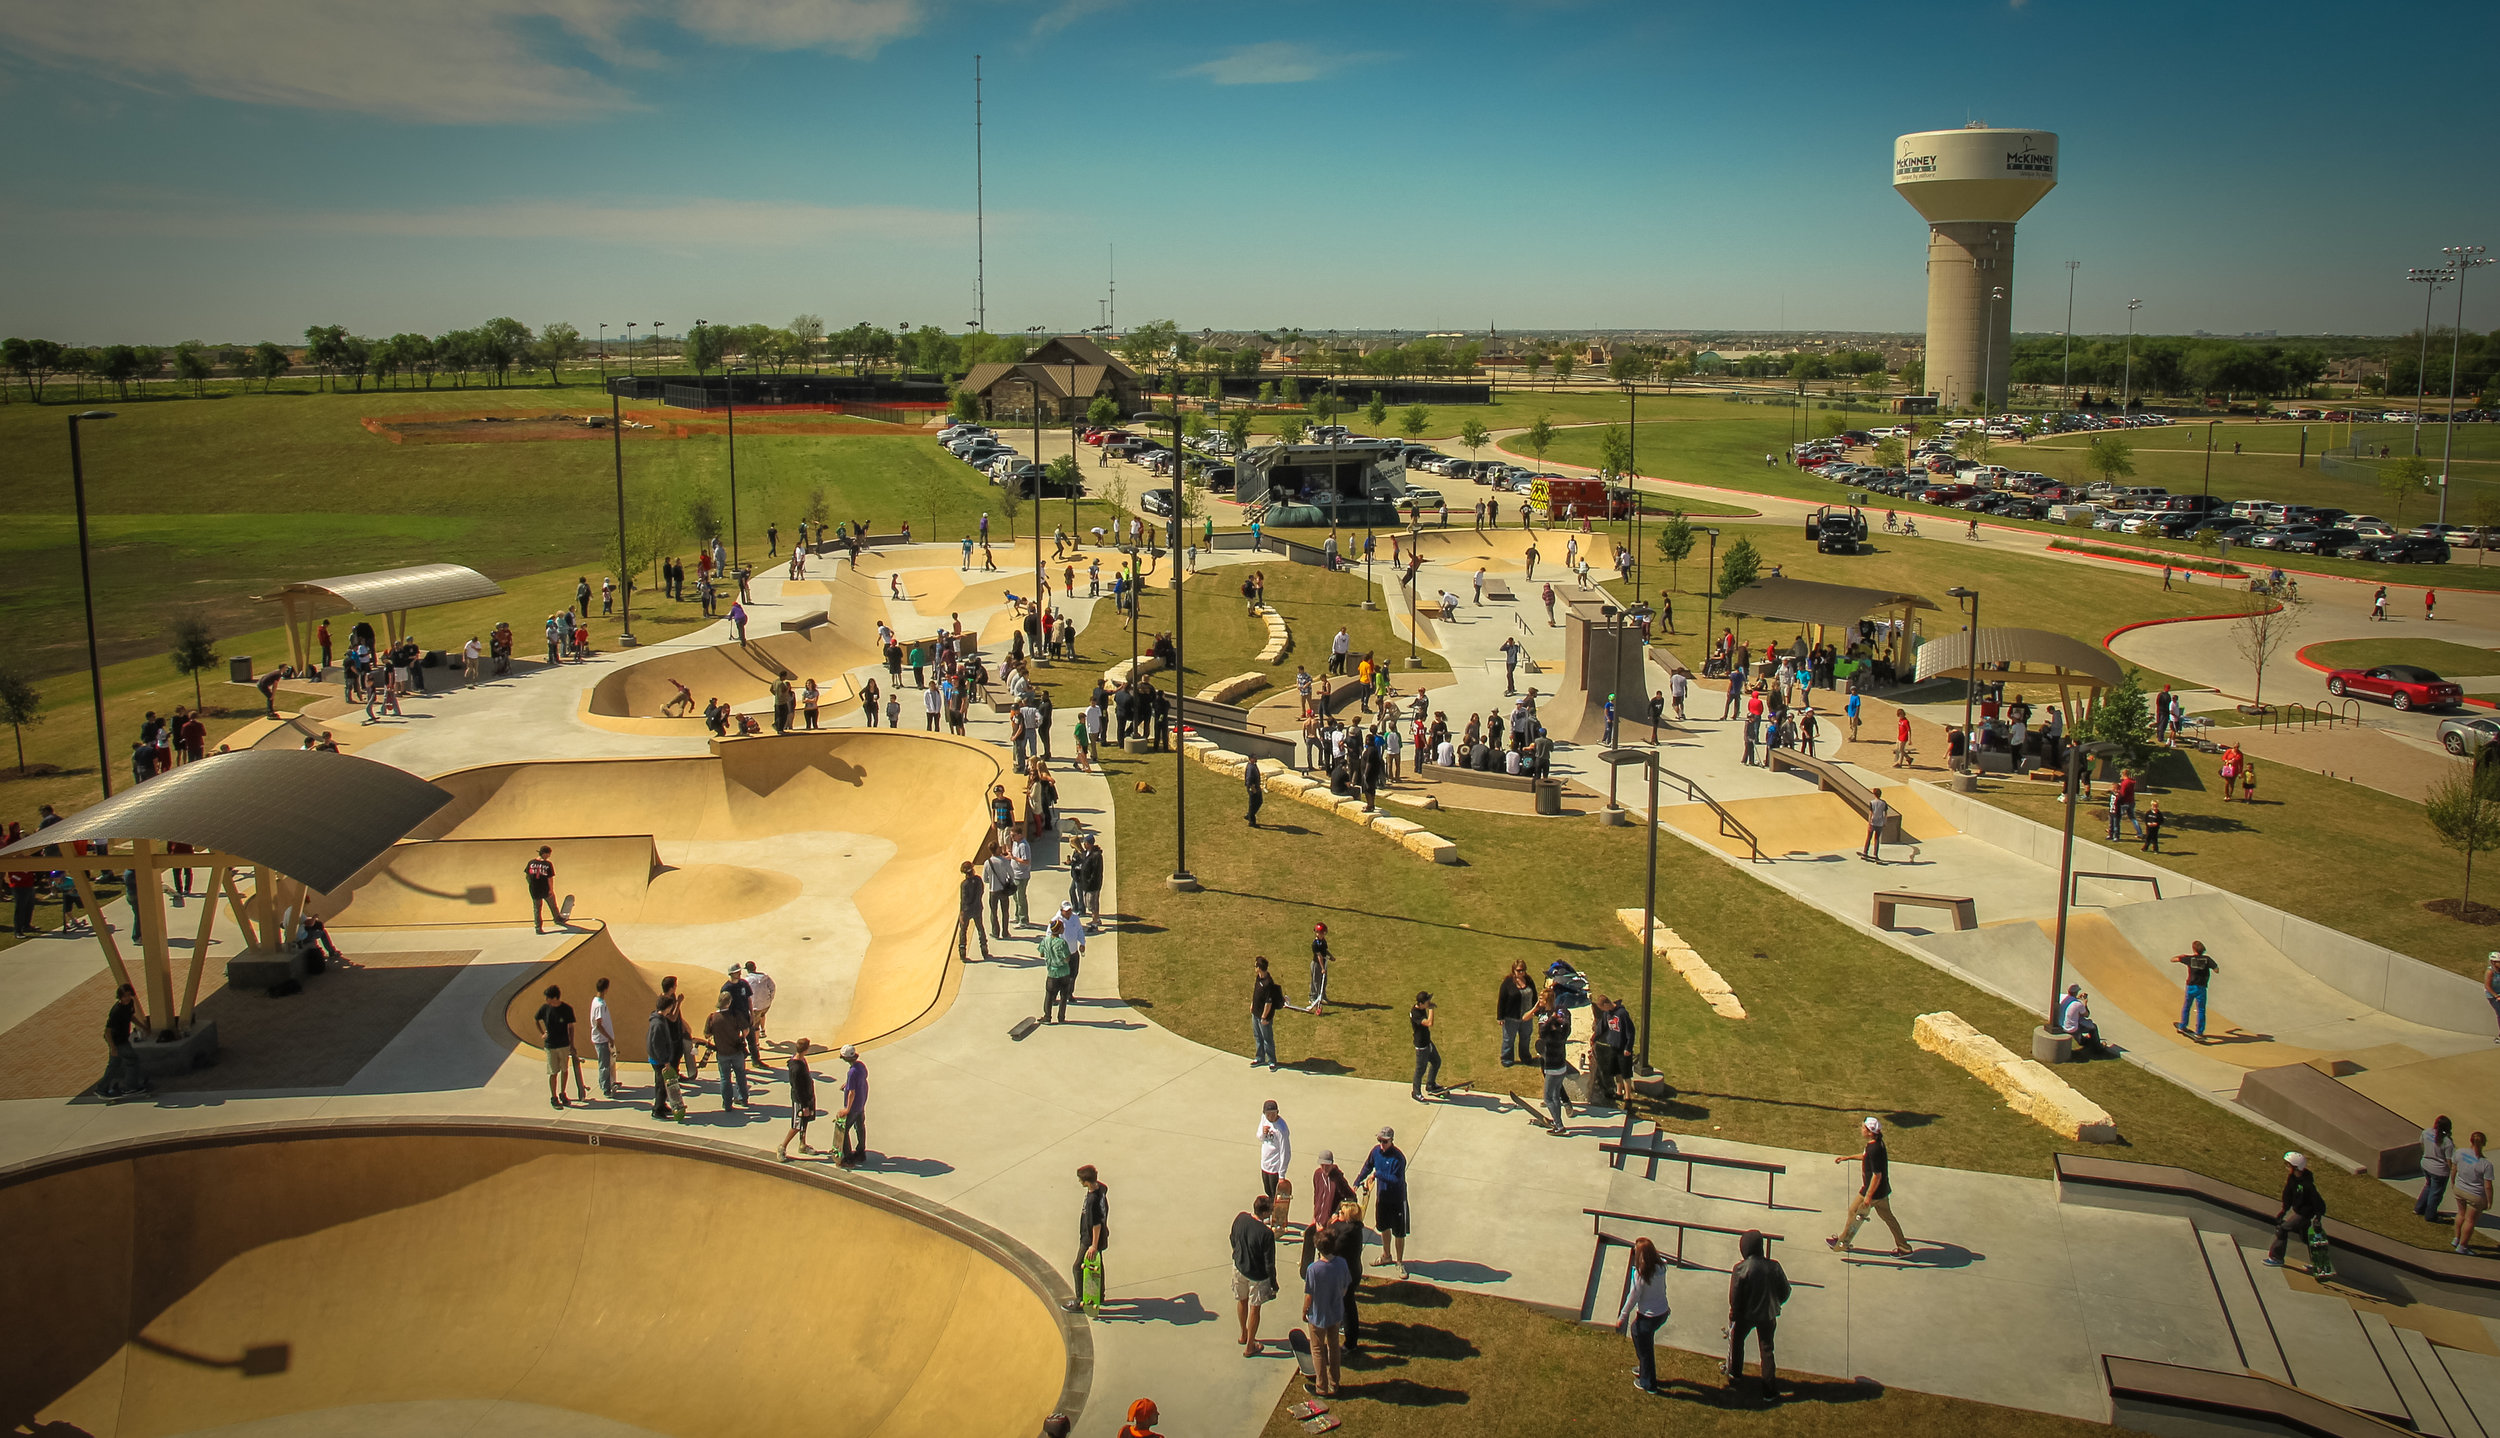 McKinney Skatepark overview shows the incorporation of safe spectator zones, shade elements and terrain features for various interests and skill levels included in a single facility.